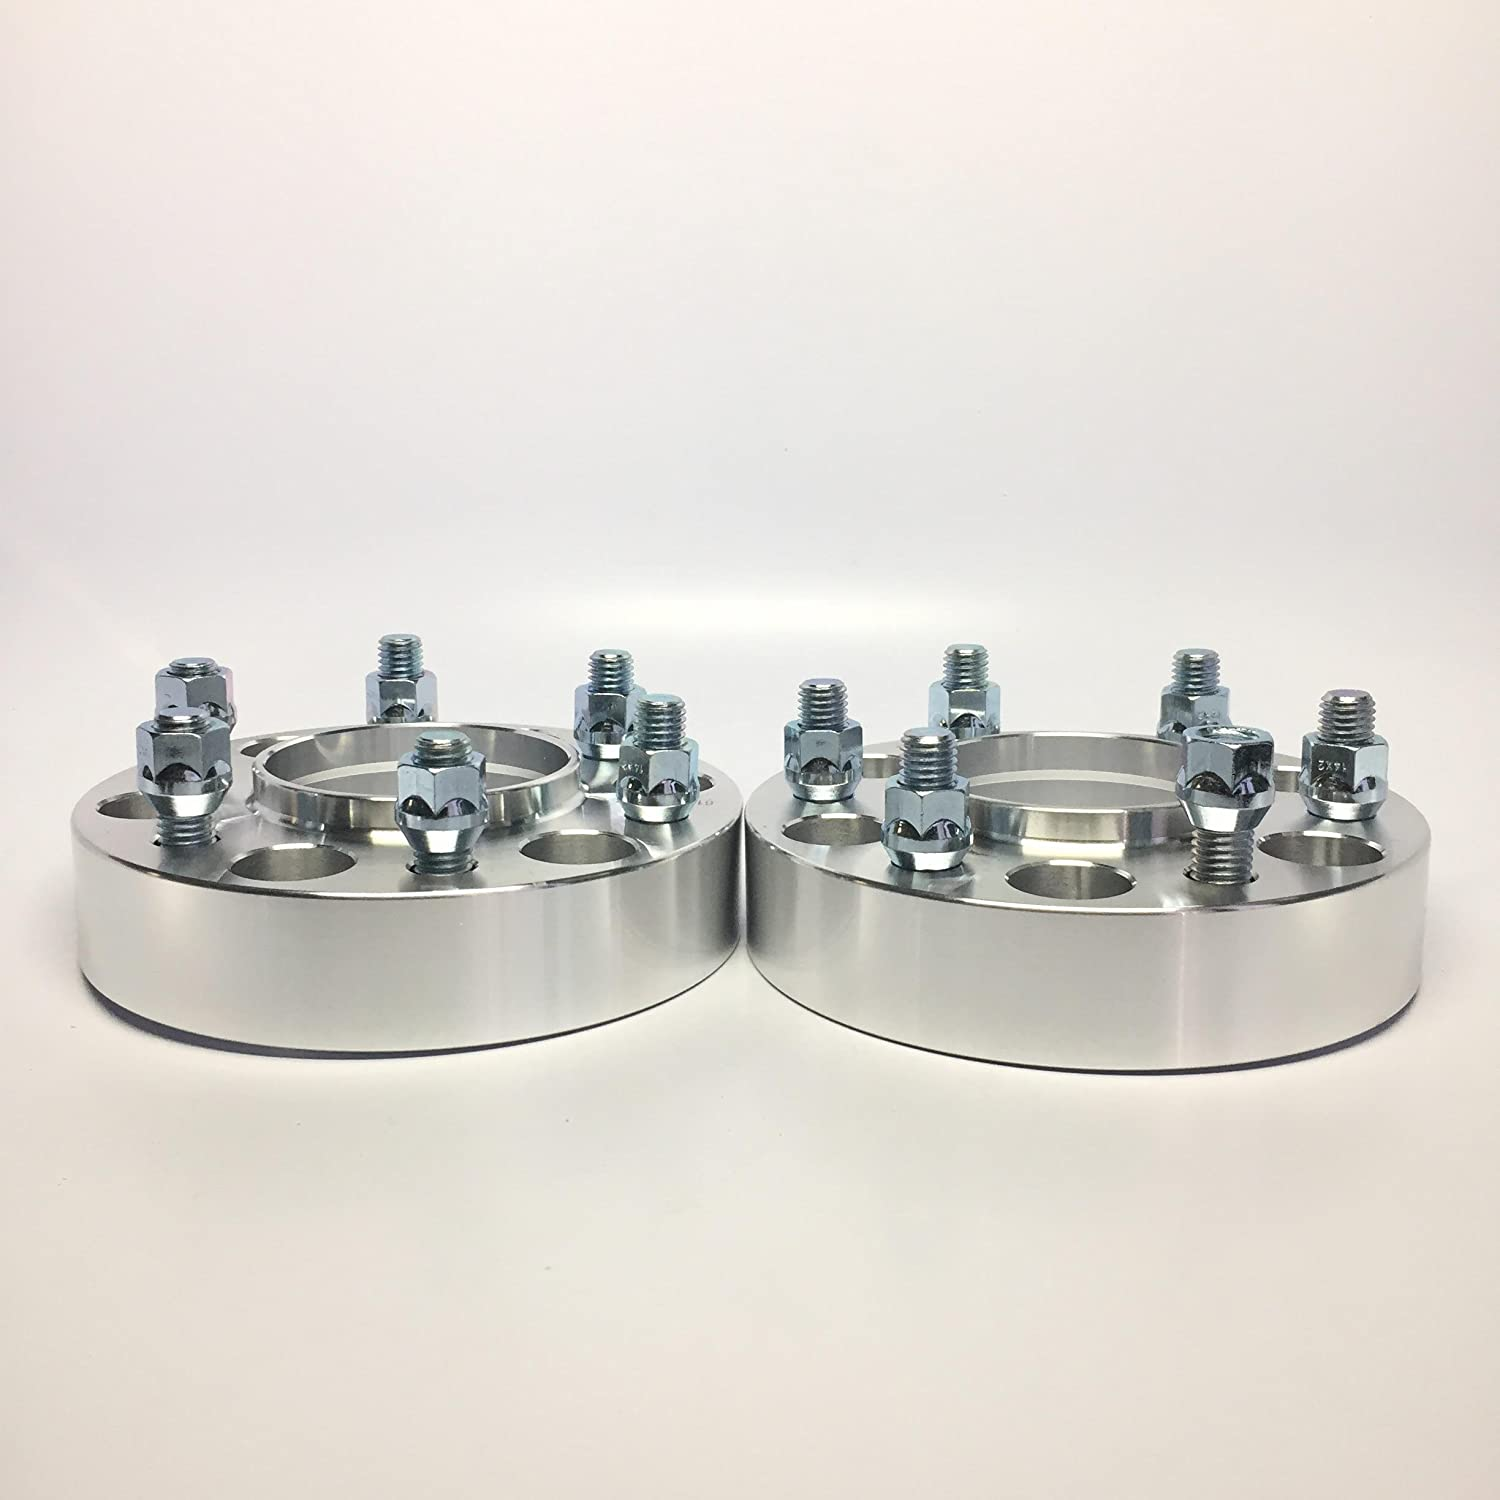 2 Pieces 1.5 38mm Hub Centric Wheel Spacers Bolt Pattern 6x135 to 6x135 Center Bore 87.1mm Thread Pitch 14x2.0 Studs